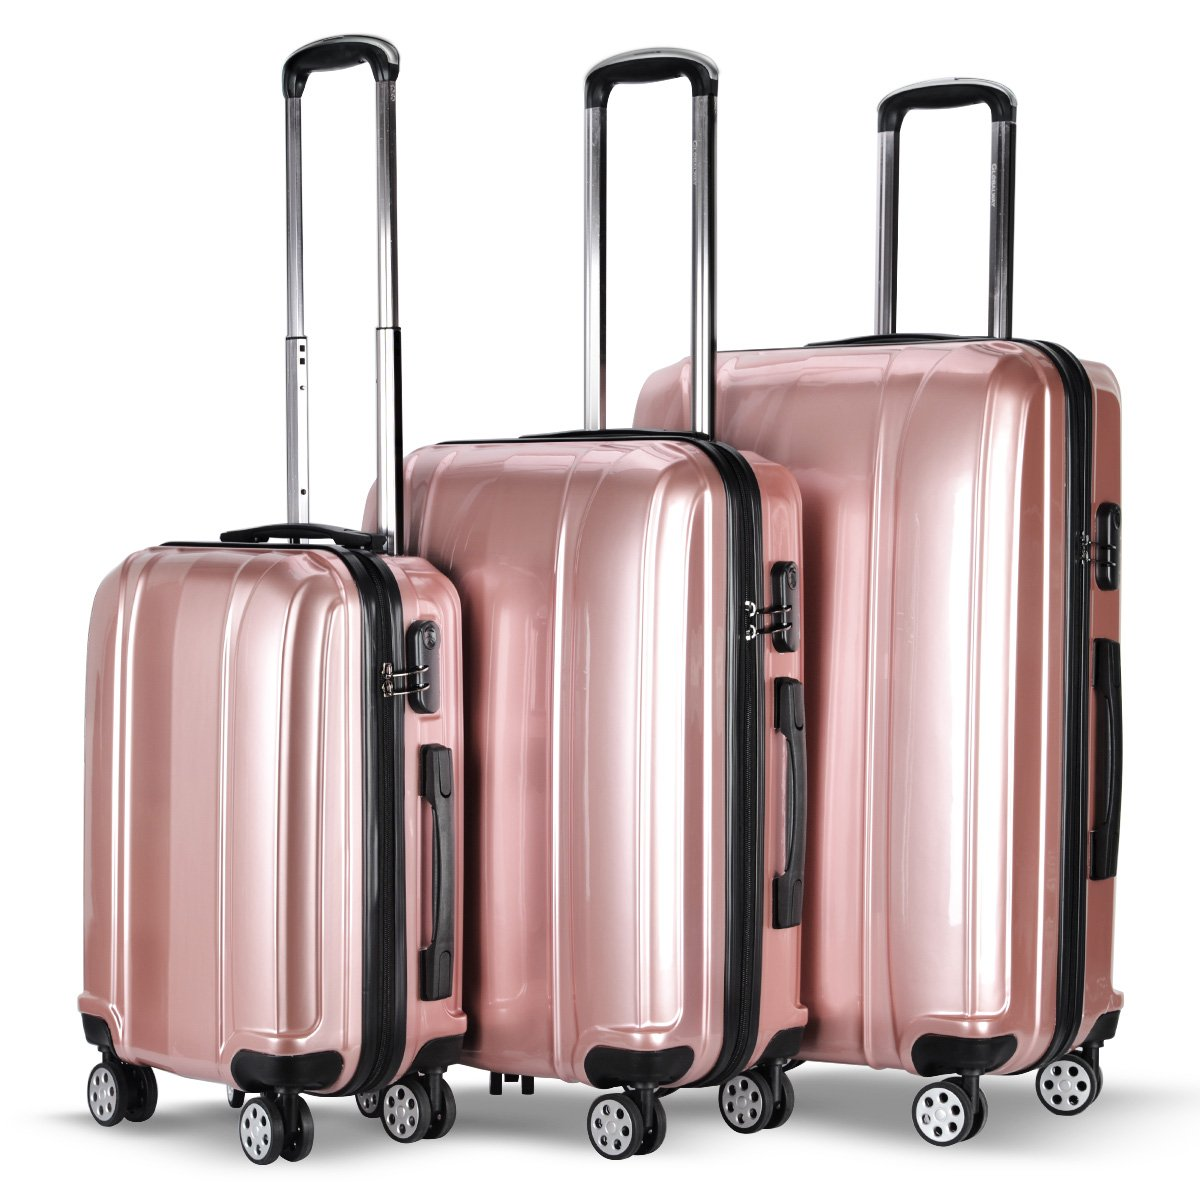 Goplus 3 Piece Luggage Set Hard Suitcases Carry On for Travel (Pink) by Goplus